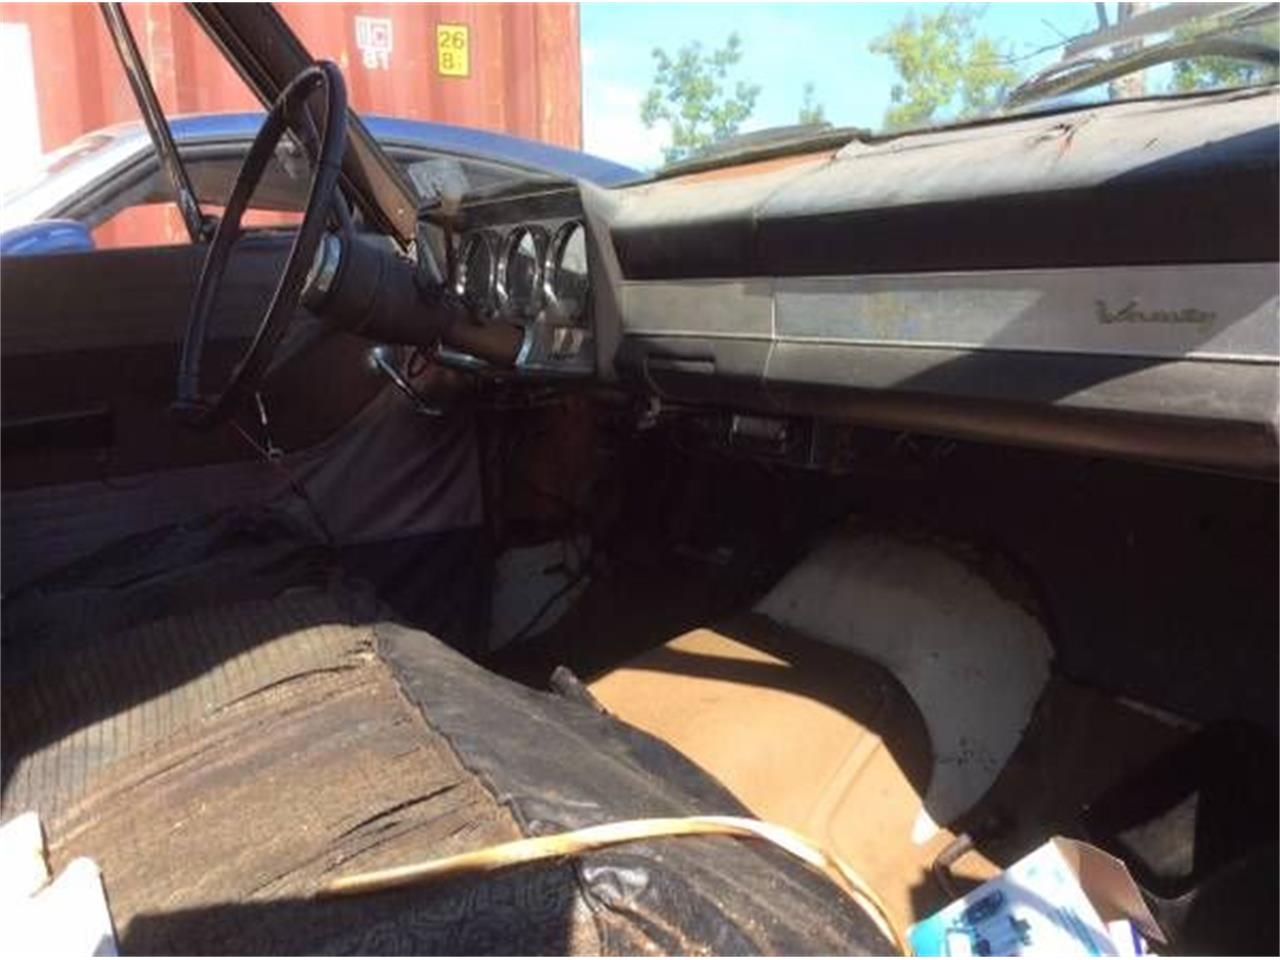 1963 Studebaker Lark for sale in Cadillac, MI – photo 6